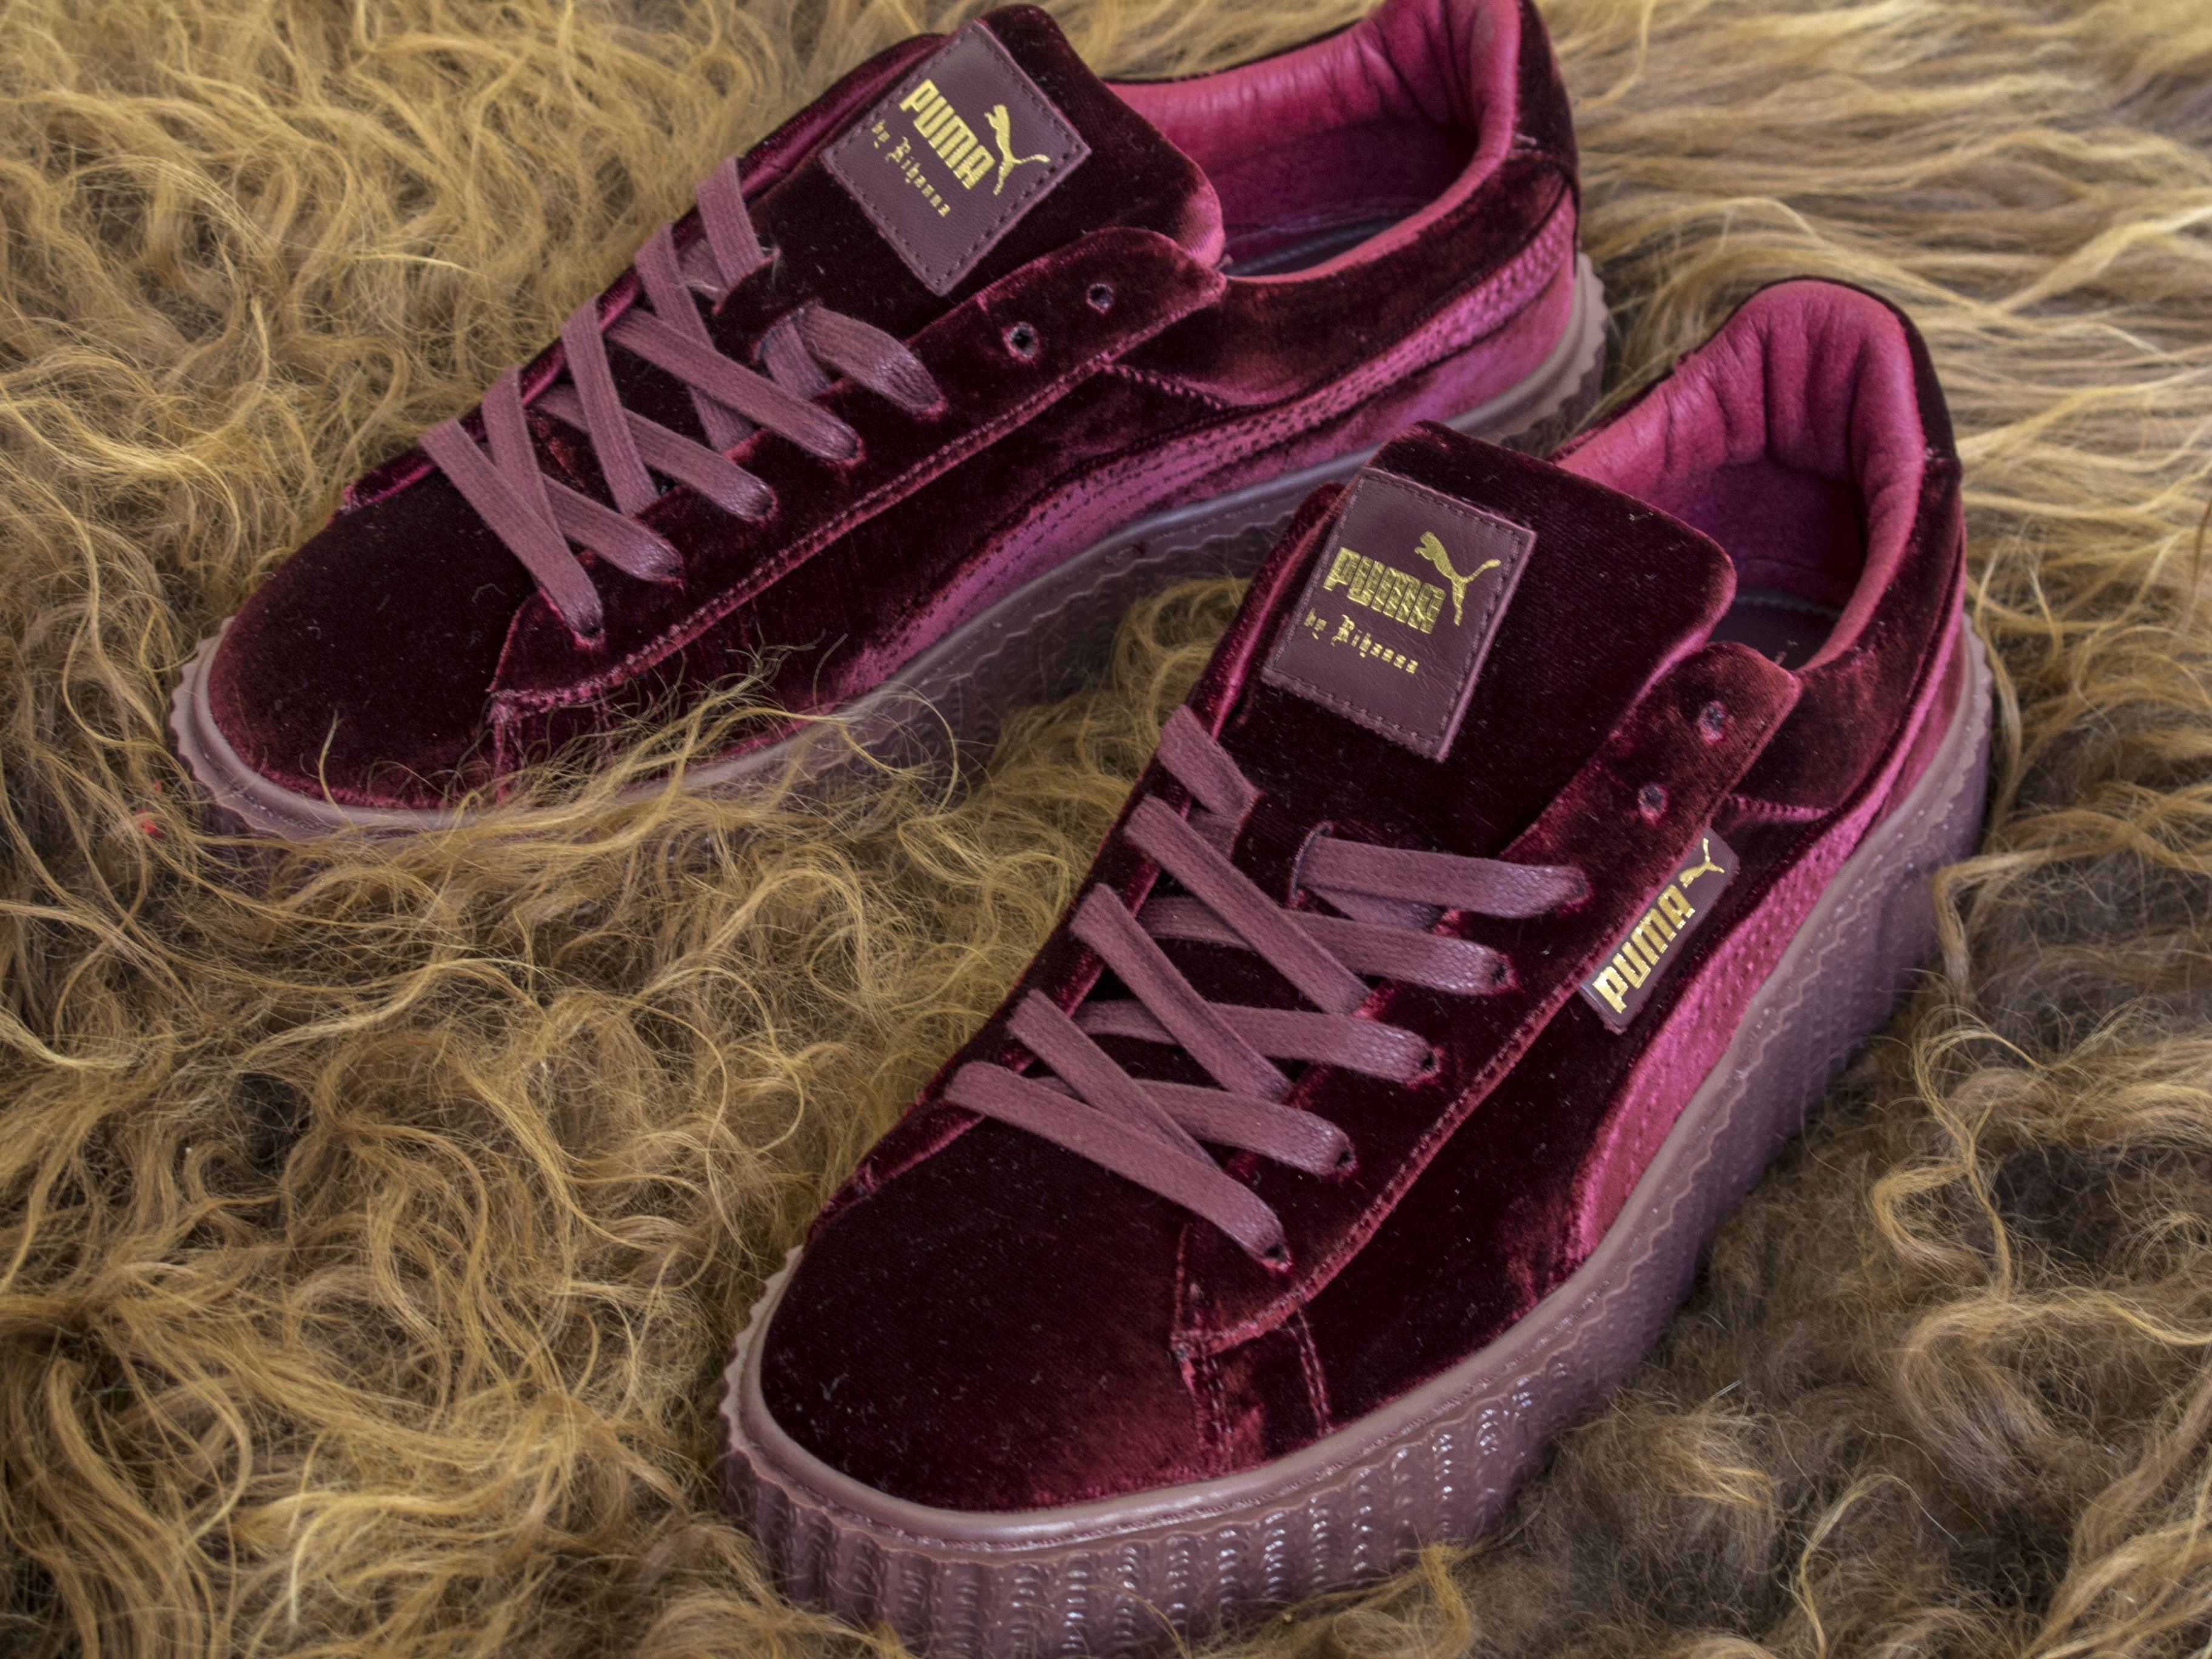 7254539151a Watch out for fake Puma Rihanna Creepers - Velvet when you shop ...